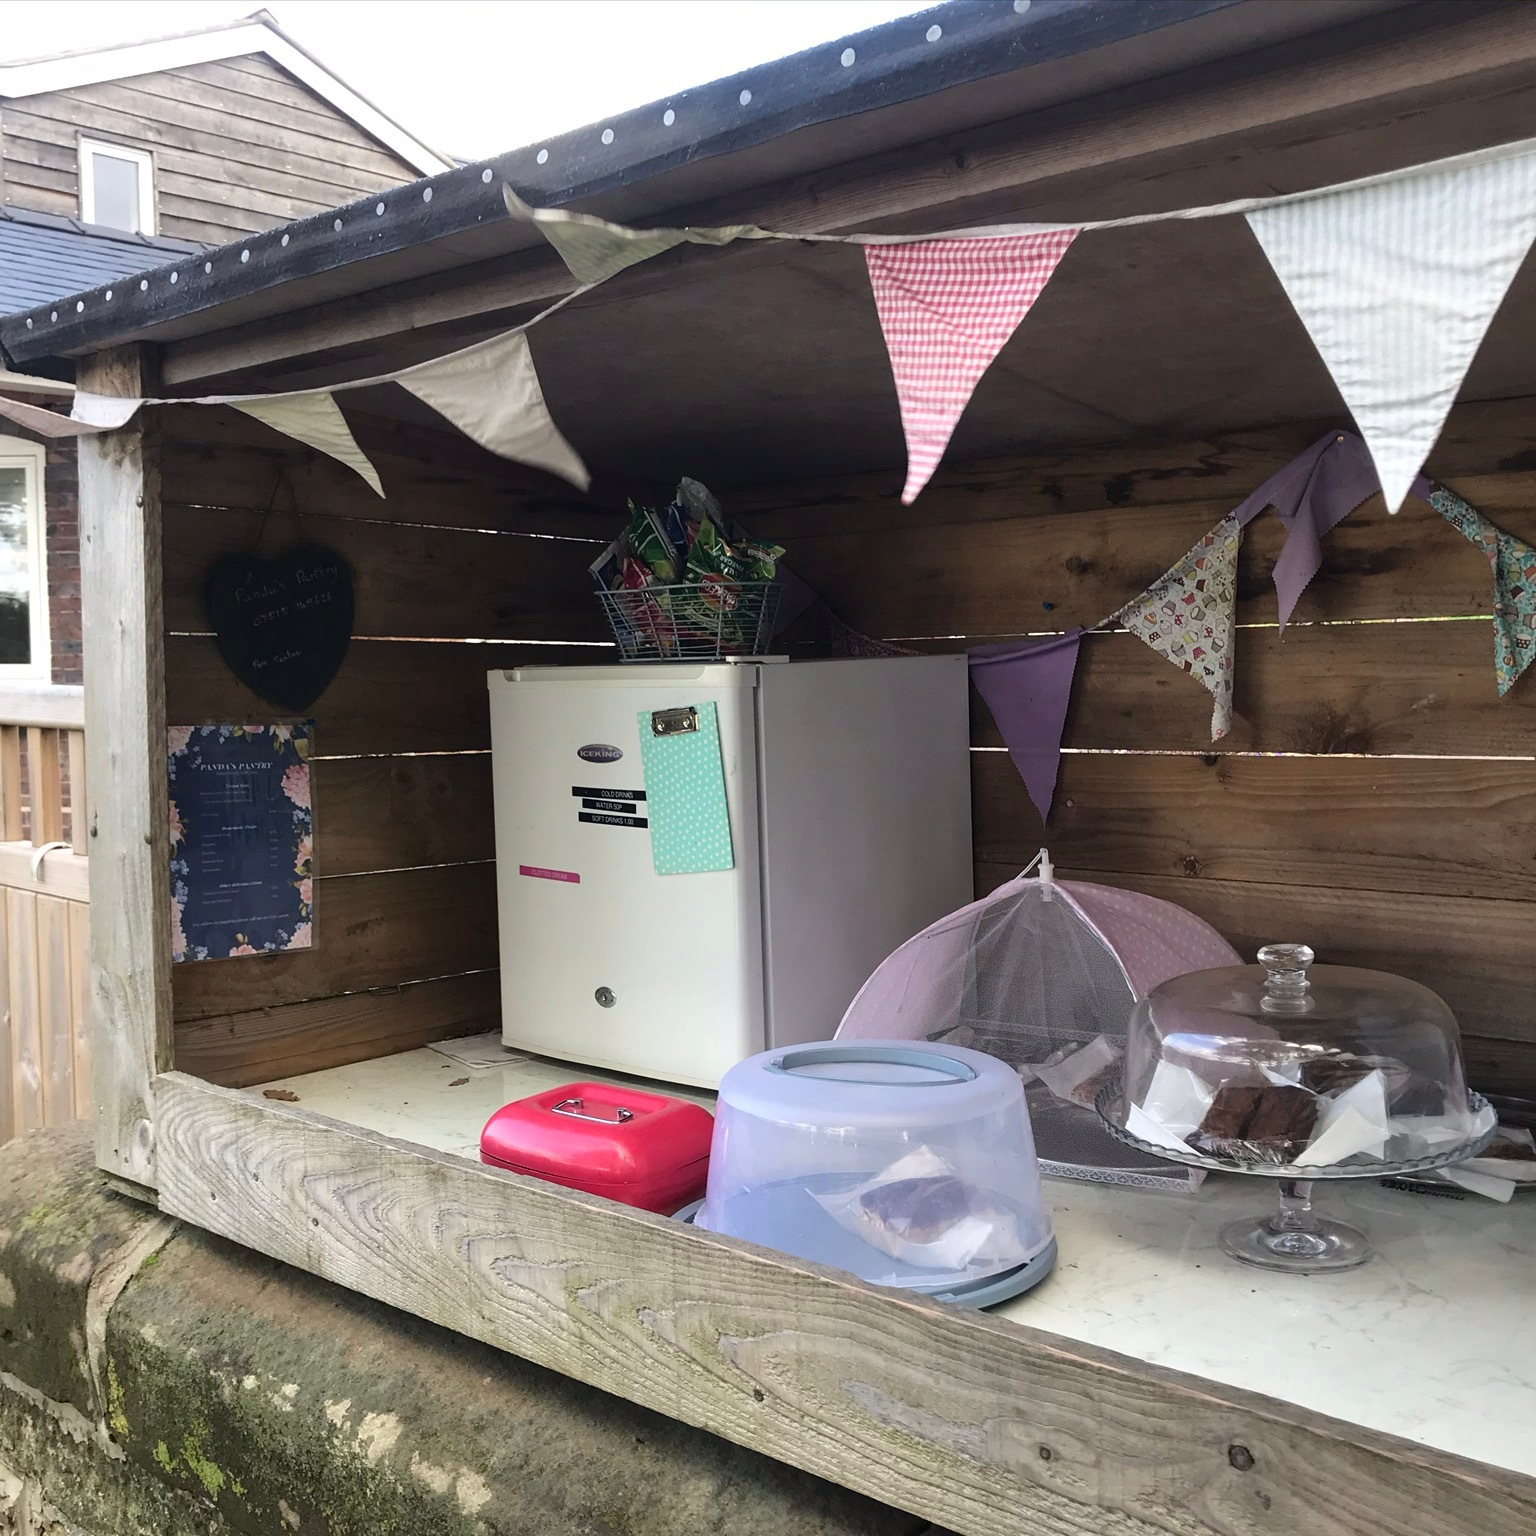 A timber shelter with pastel coloured bunting. There is cake under covers, a fridge and a red cash box.